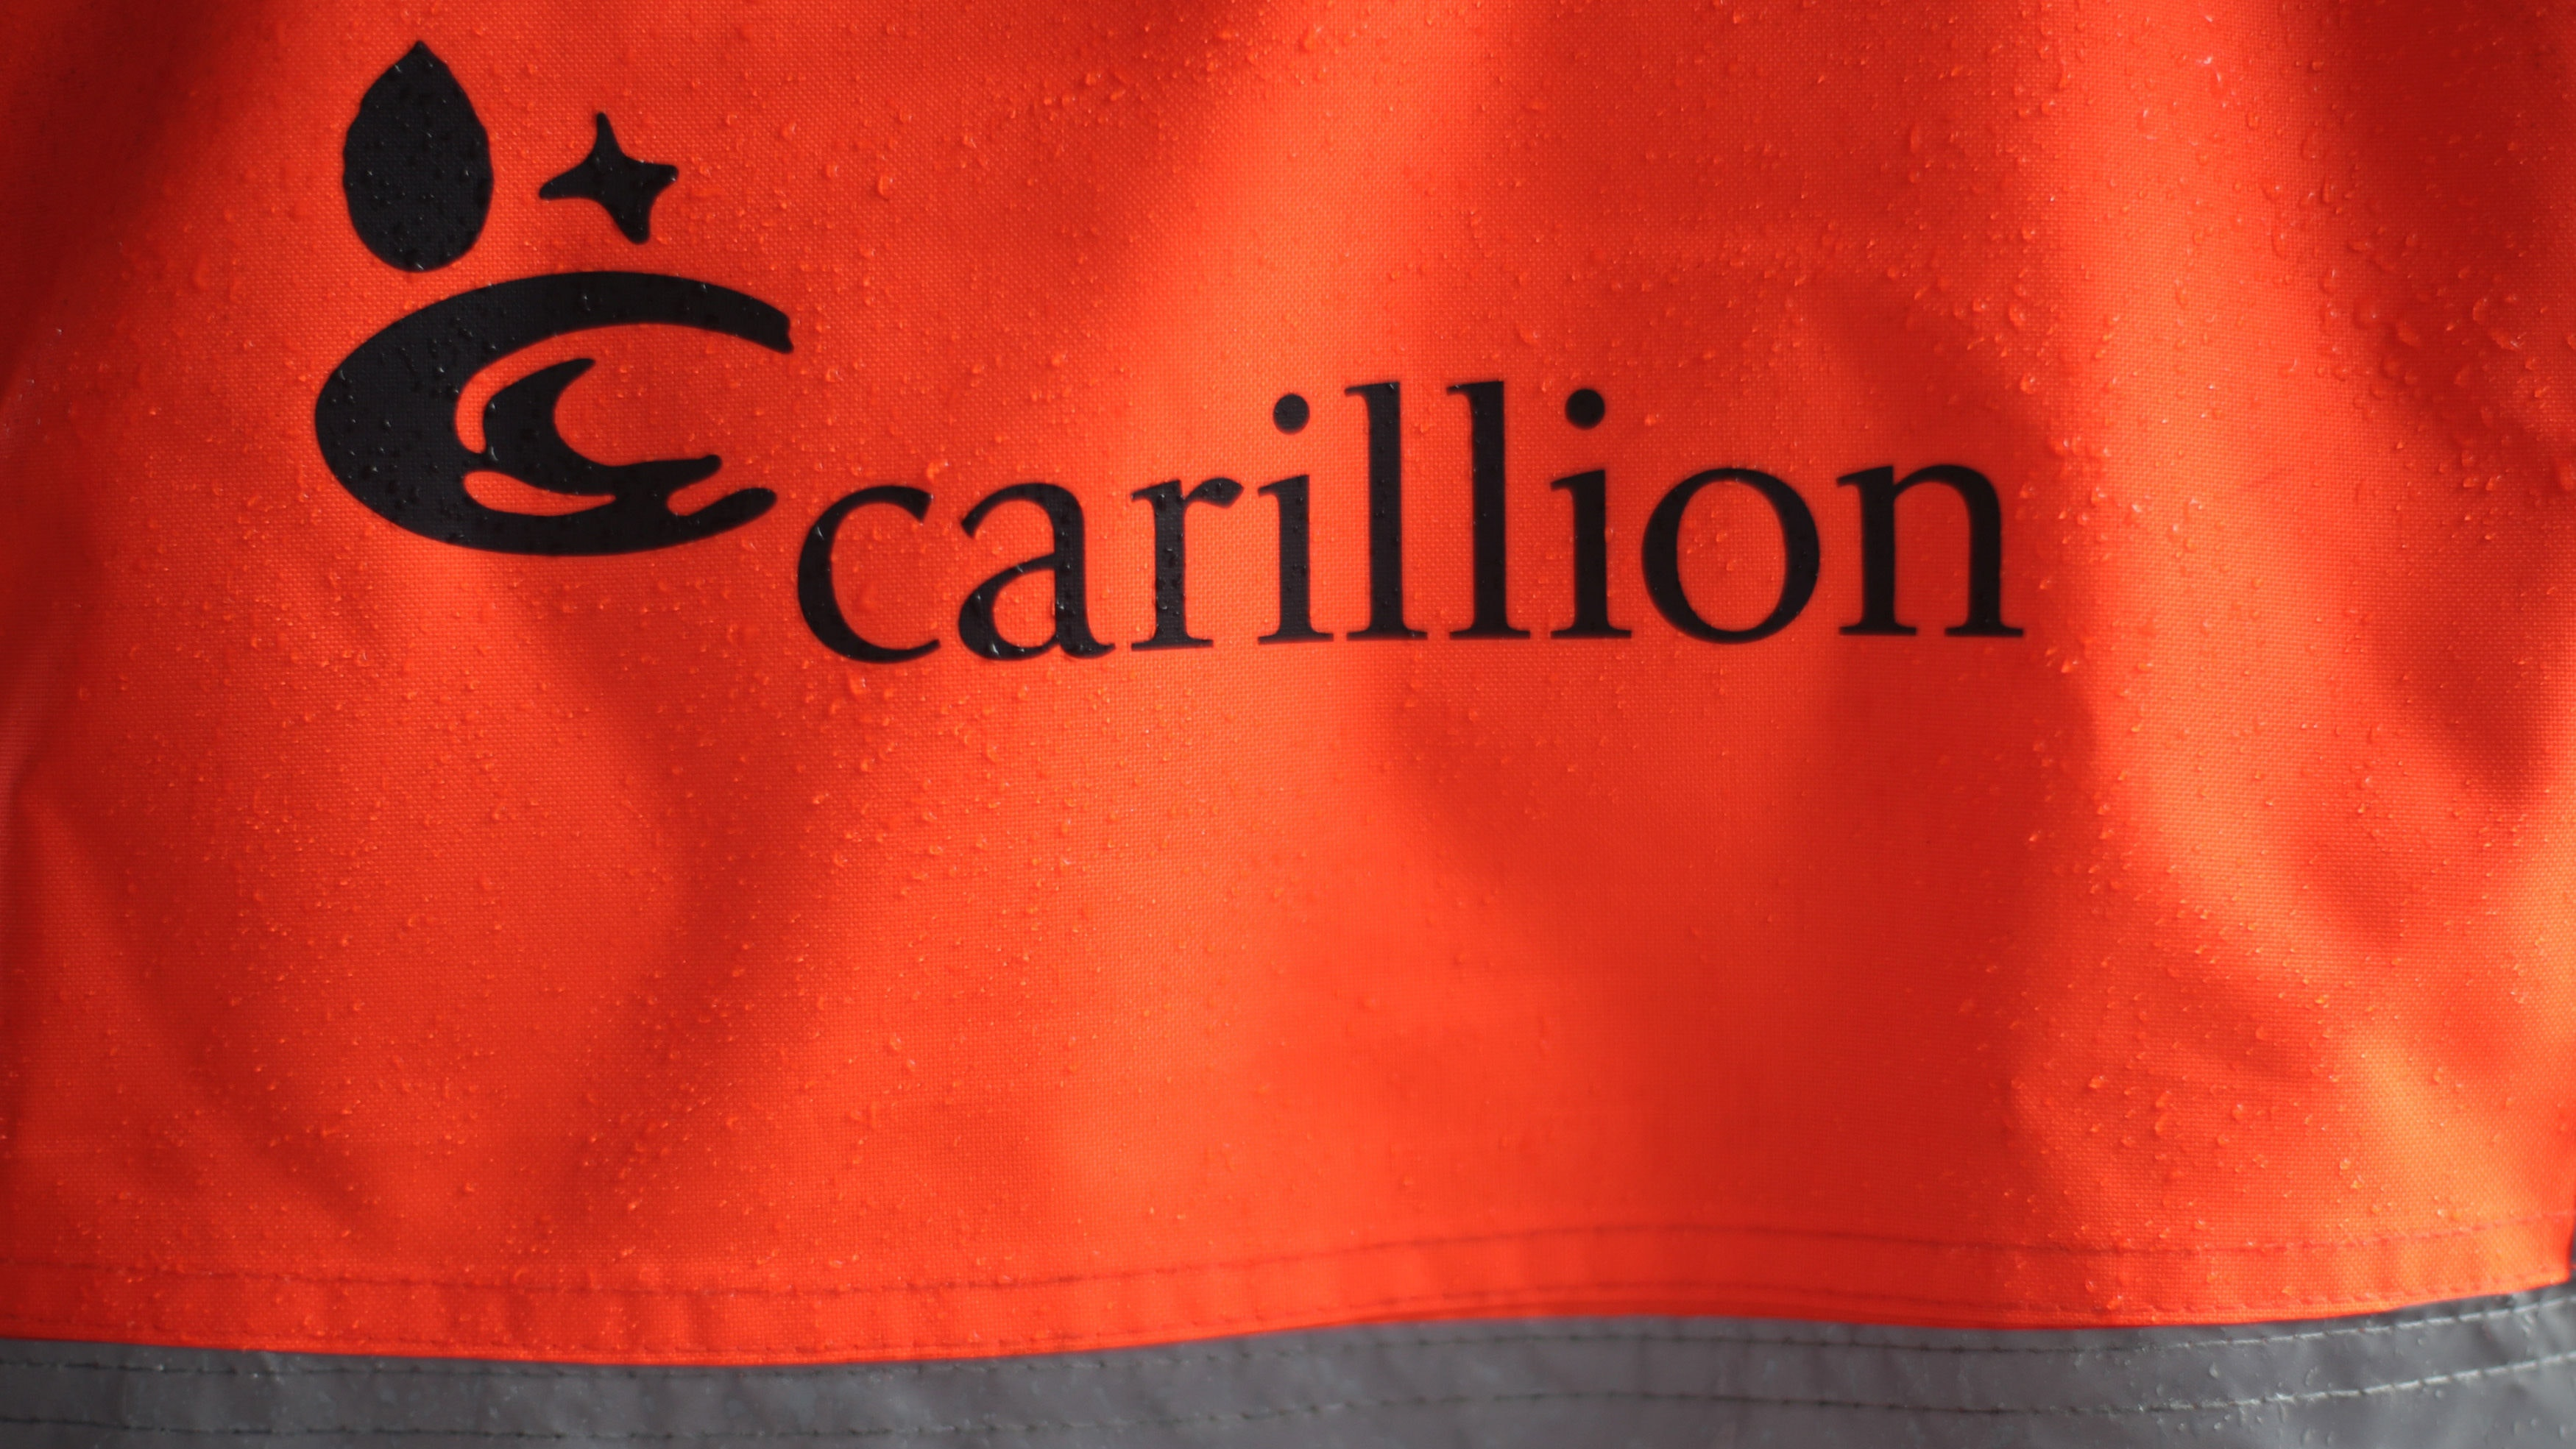 Carillion accused of attempting to 'wriggle out' of pensions obligations